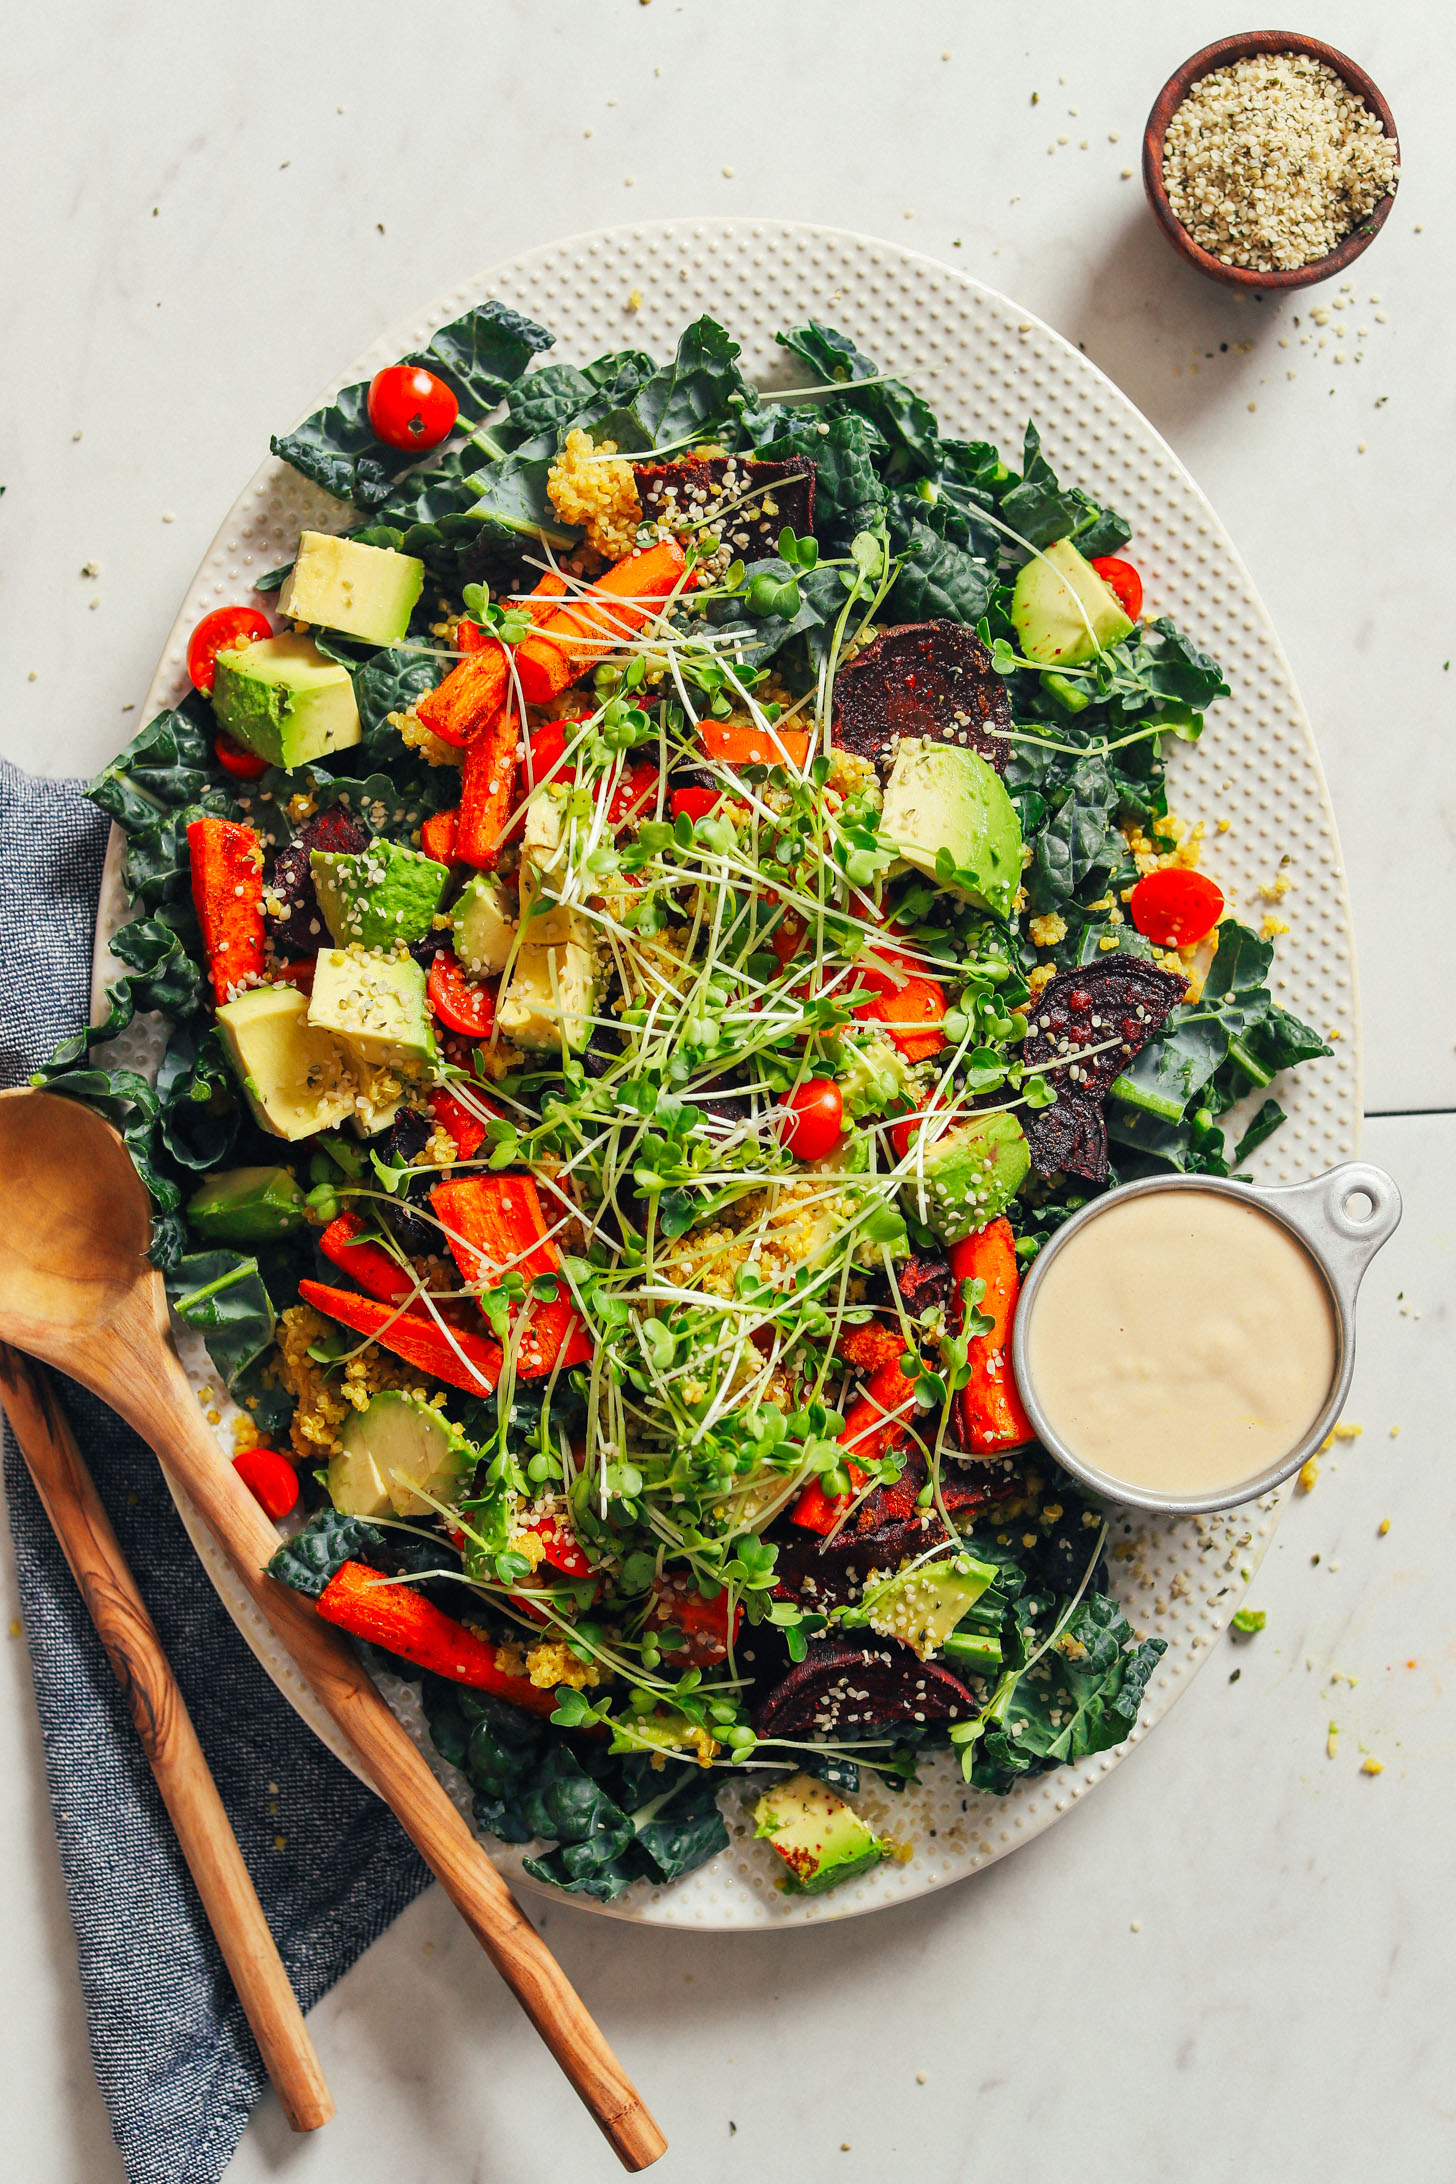 HEALTHY Loaded Kale Salad in just 55 minutes! Roasted and fresh veggies, sprouts, quinoa, and tahini dressing! #dinner #vegan #glutenfree #salad #healthy #minimalistbaker #recipe